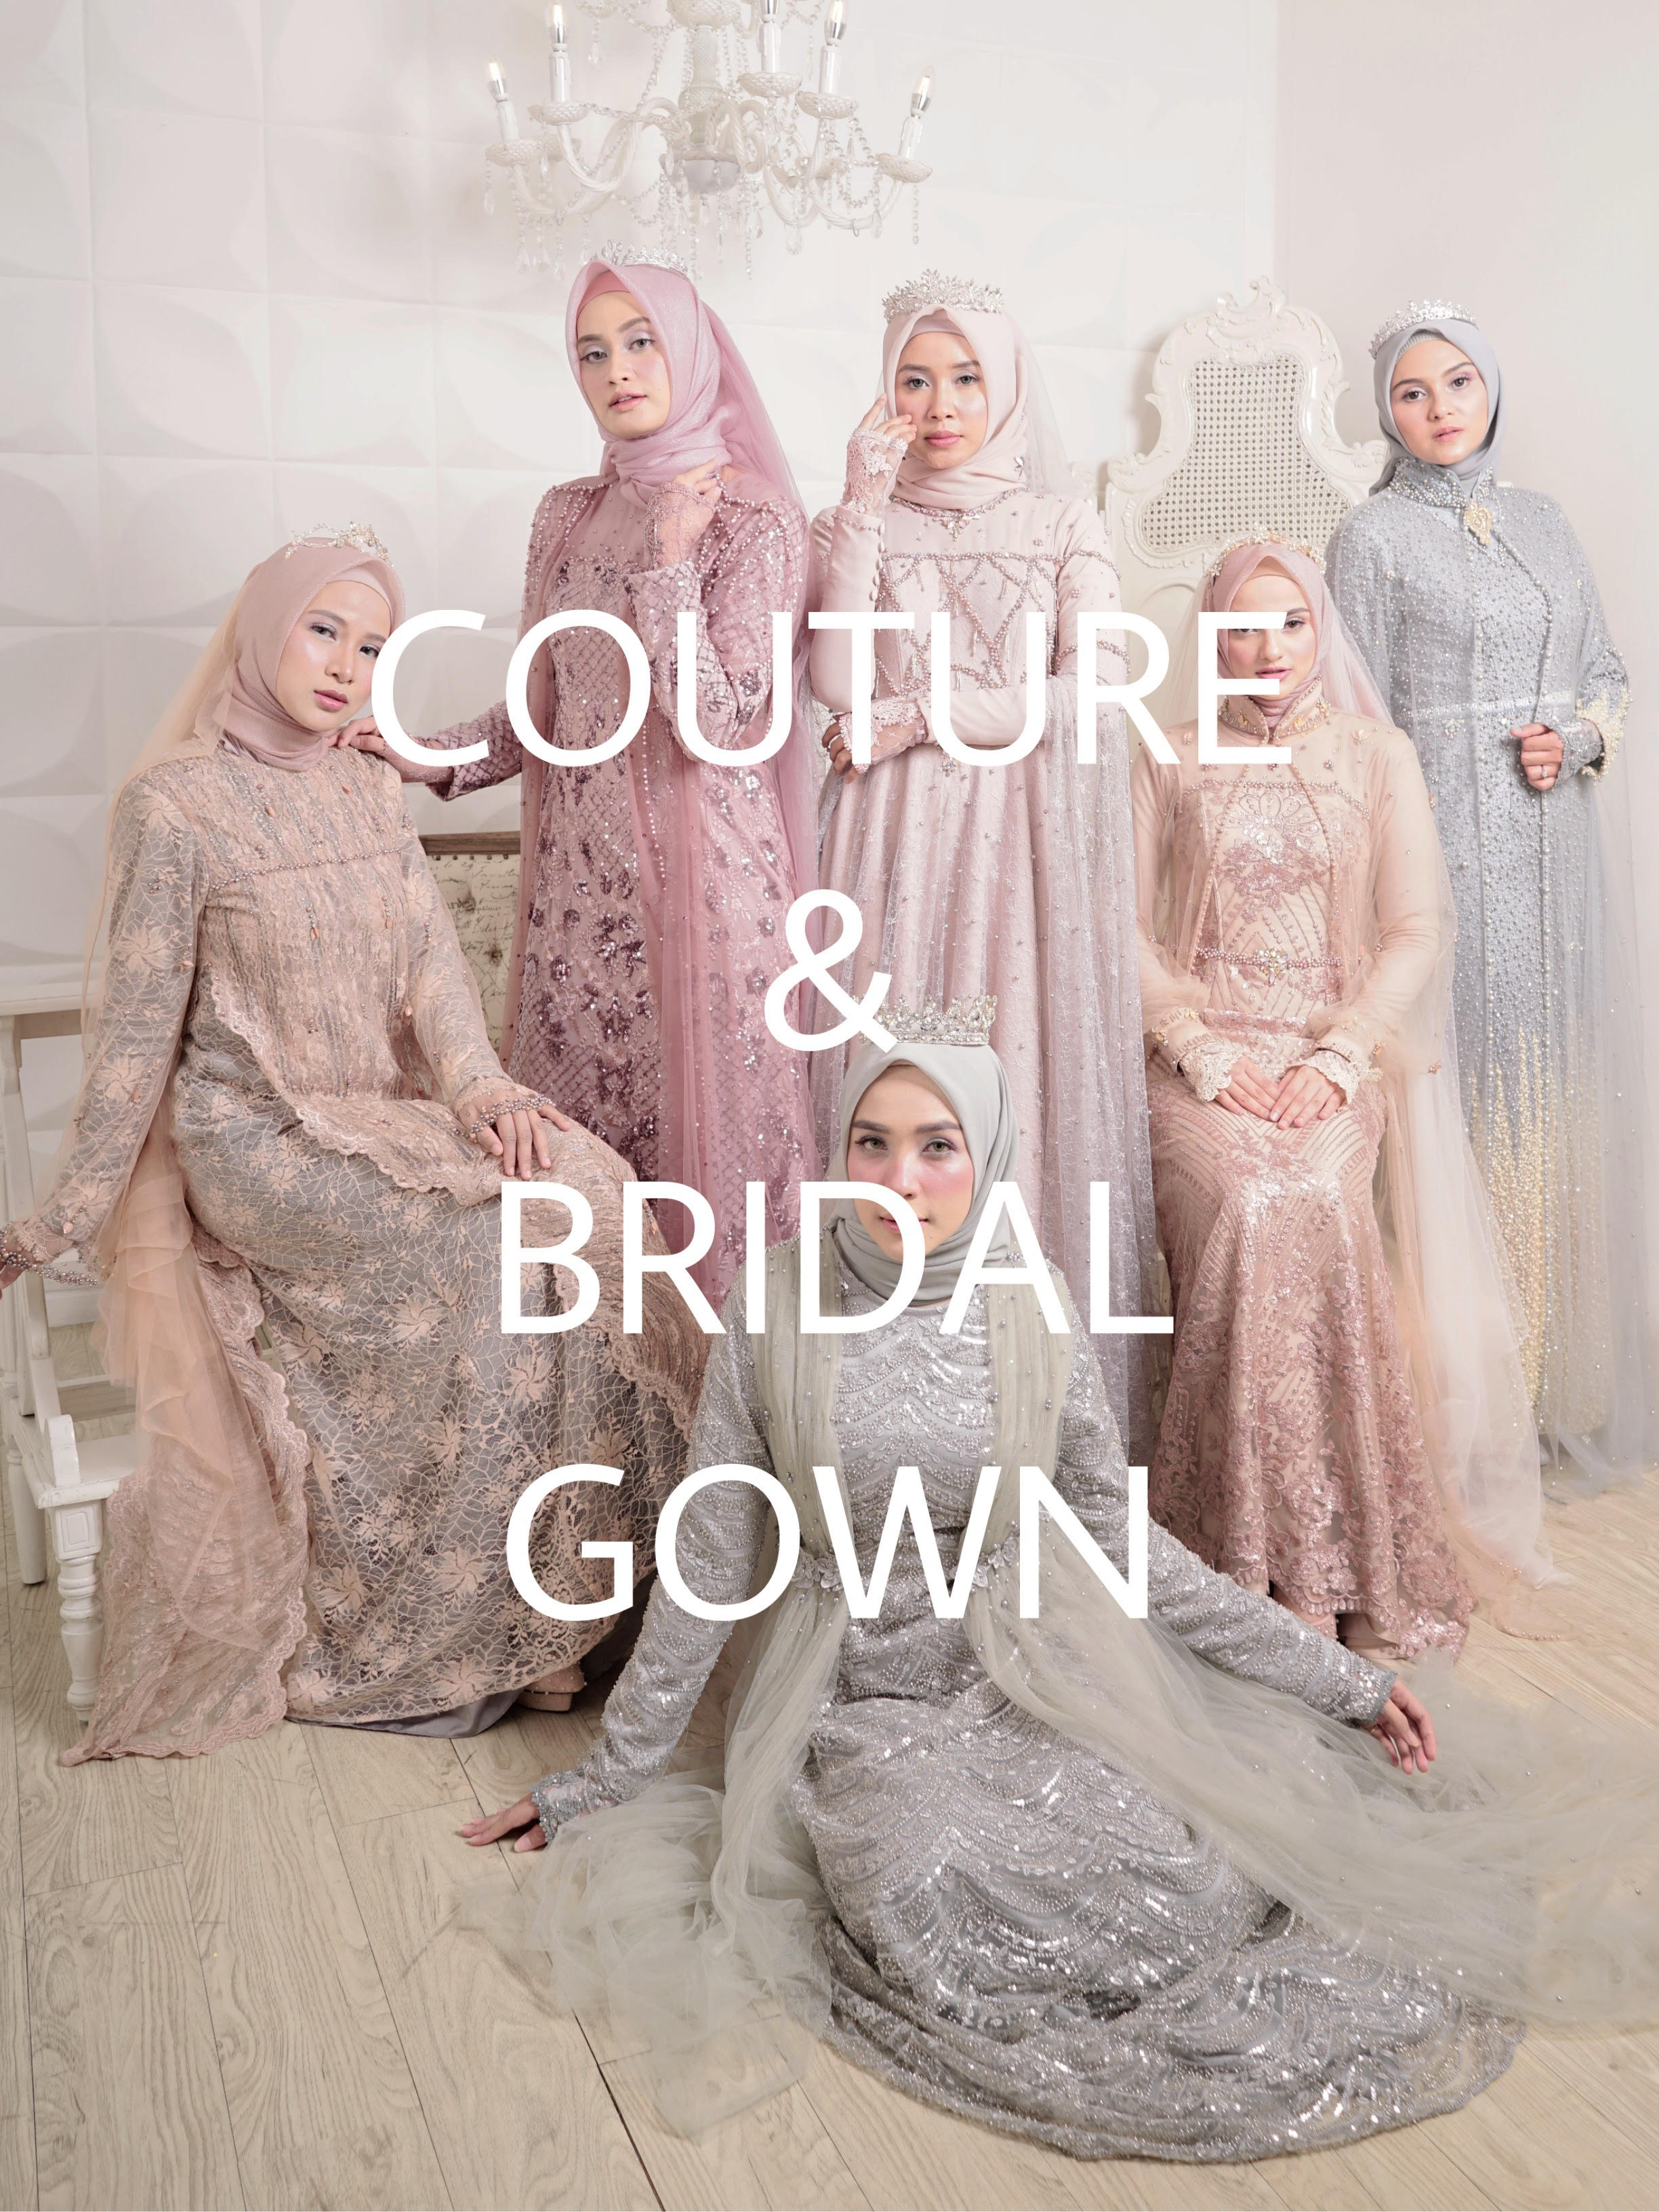 couture and bridal gown